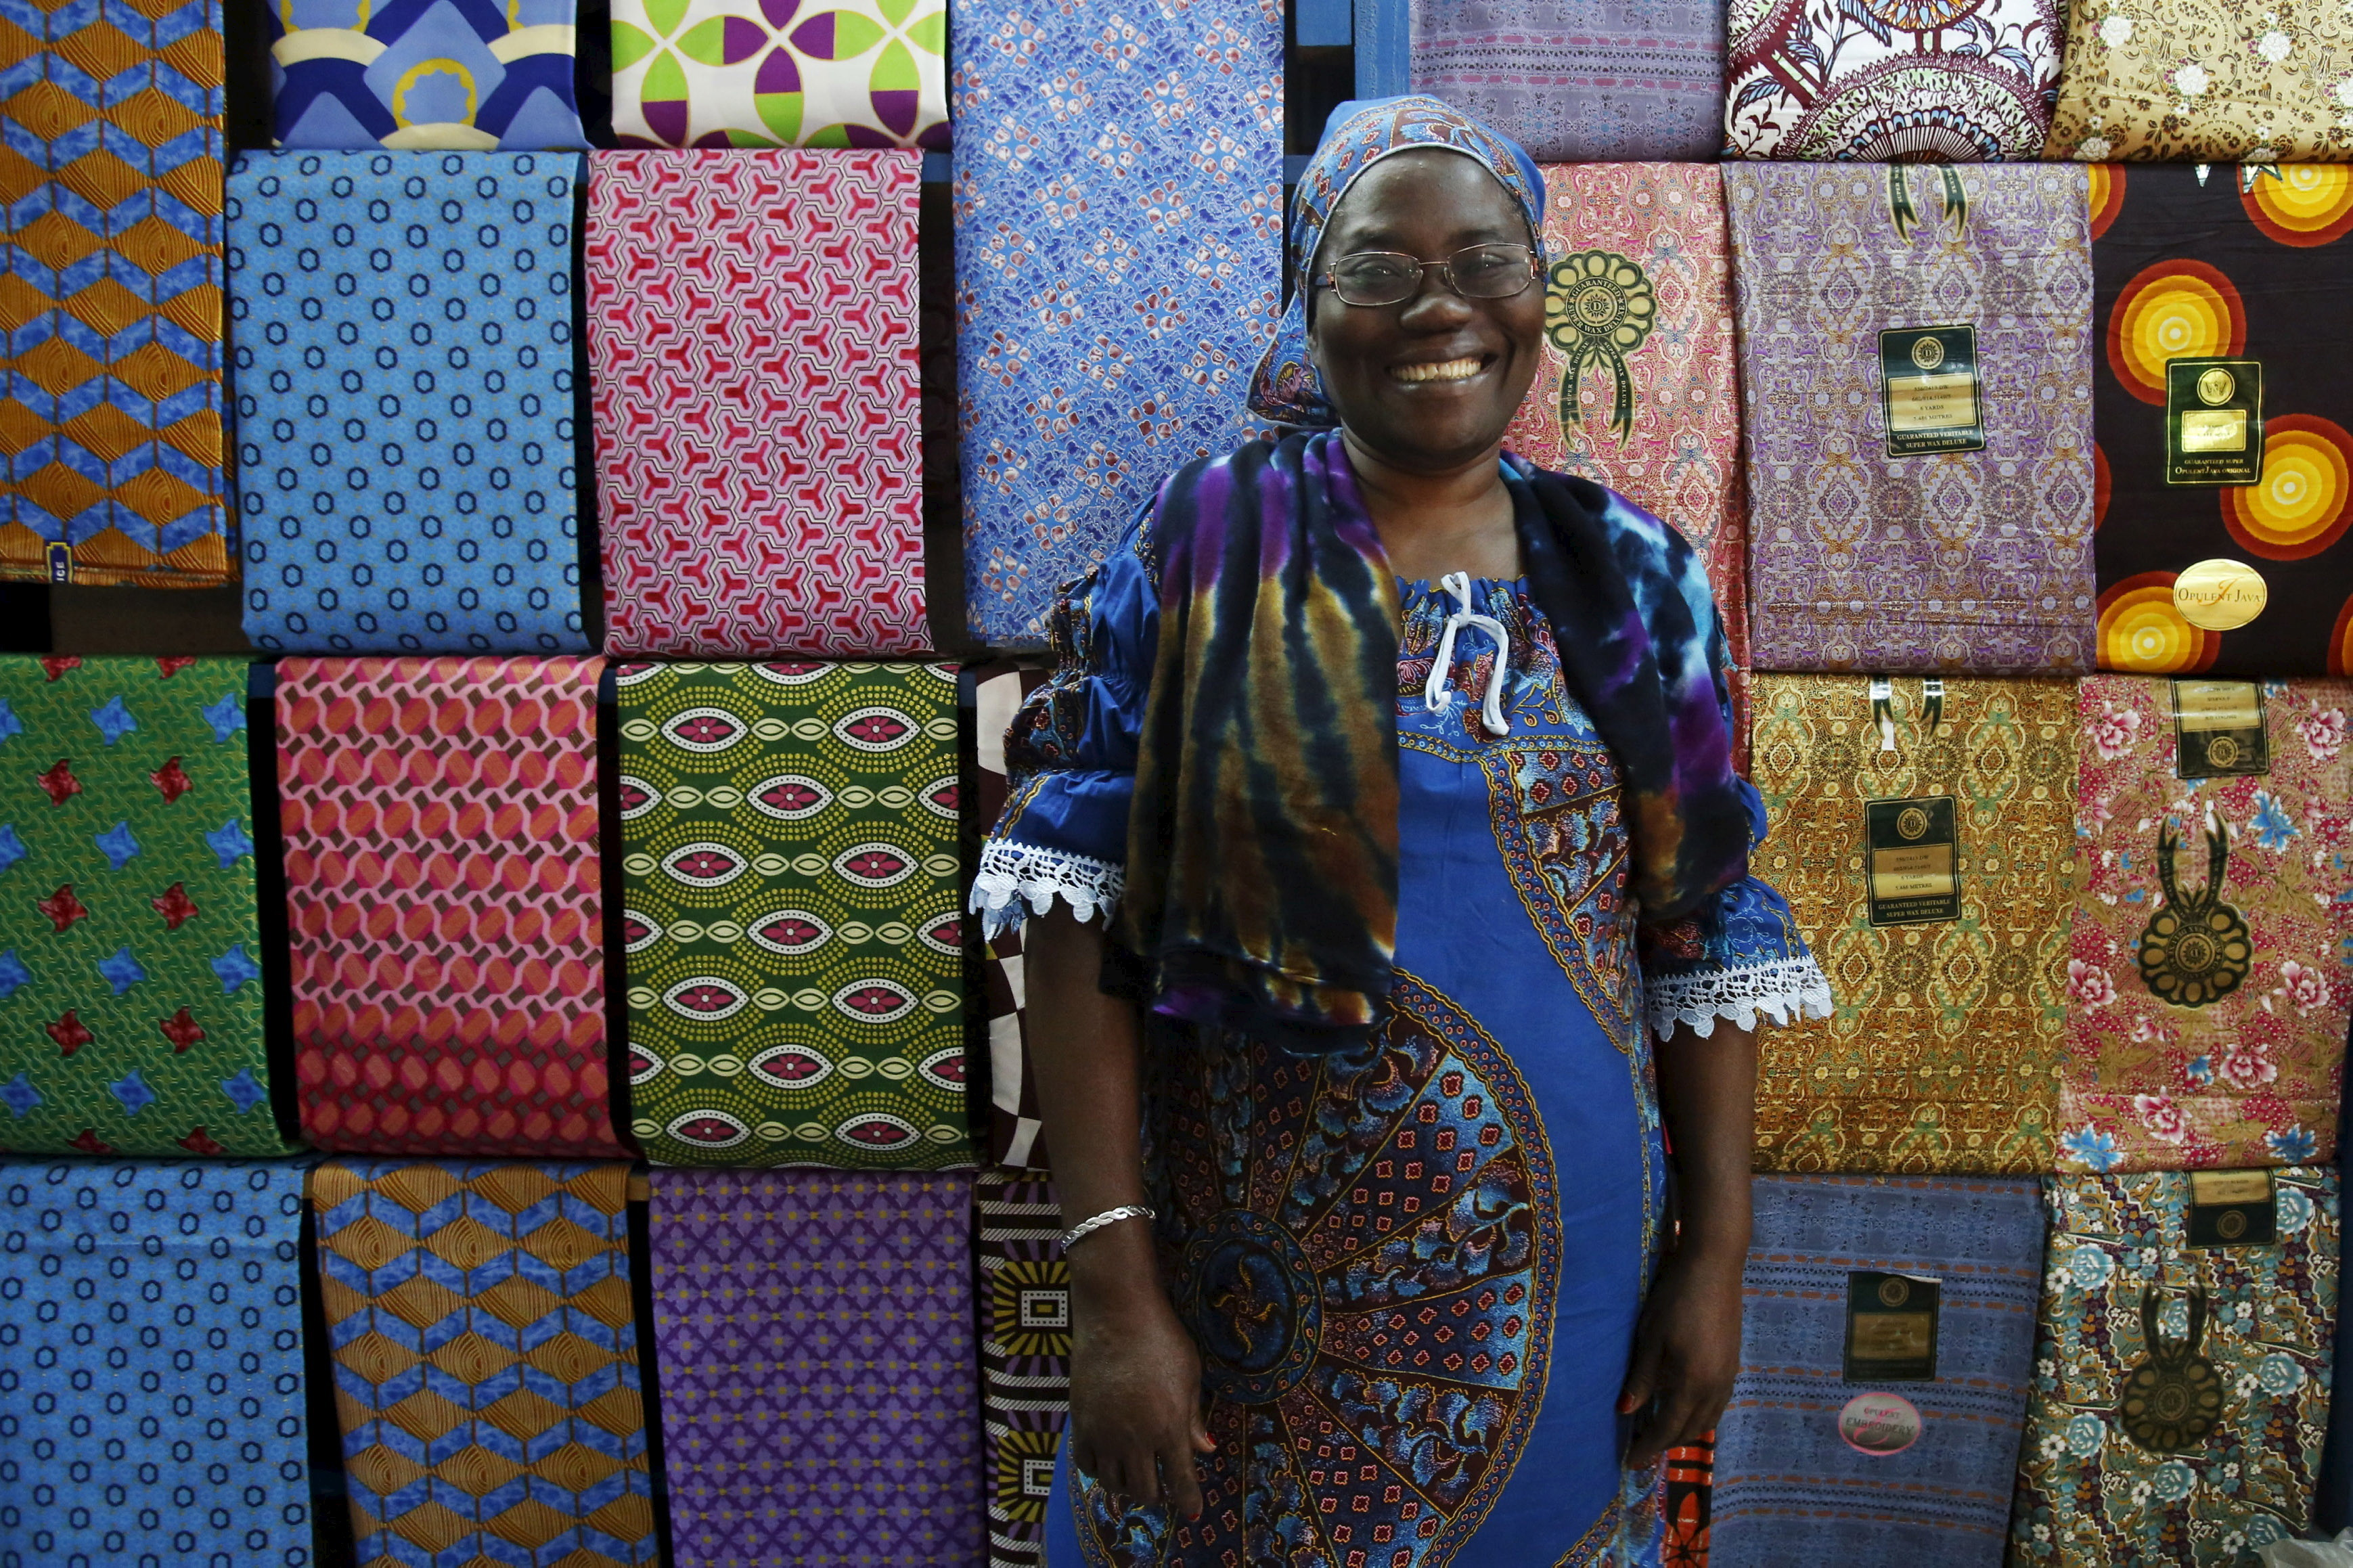 "Fofanan Man, a 59-year-old businesswoman, poses for a photograph in front of textiles in her shop in Bouake, Ivory Coast, February 10, 2016. Women have long played a dominant role in agriculture in Ivory Coast and in the sprawling markets where most Ivorians purchase their daily necessities. Now some are breaking through into the most important positions in government, administration and business - positions long held by males in this traditional society. In 2012, Niale Kaba became finance minister, the first woman to hold the post in more than half a century as an independent nation. Ivorian women today work in a range of jobs – from gas-station attendant to plastic recycler and lawyer. International Women's Day is marked on March 8. REUTERS/Thierry Gouegnon SEARCH ""THE WIDER IMAGE"" FOR ALL STORIES - GF10000336765"